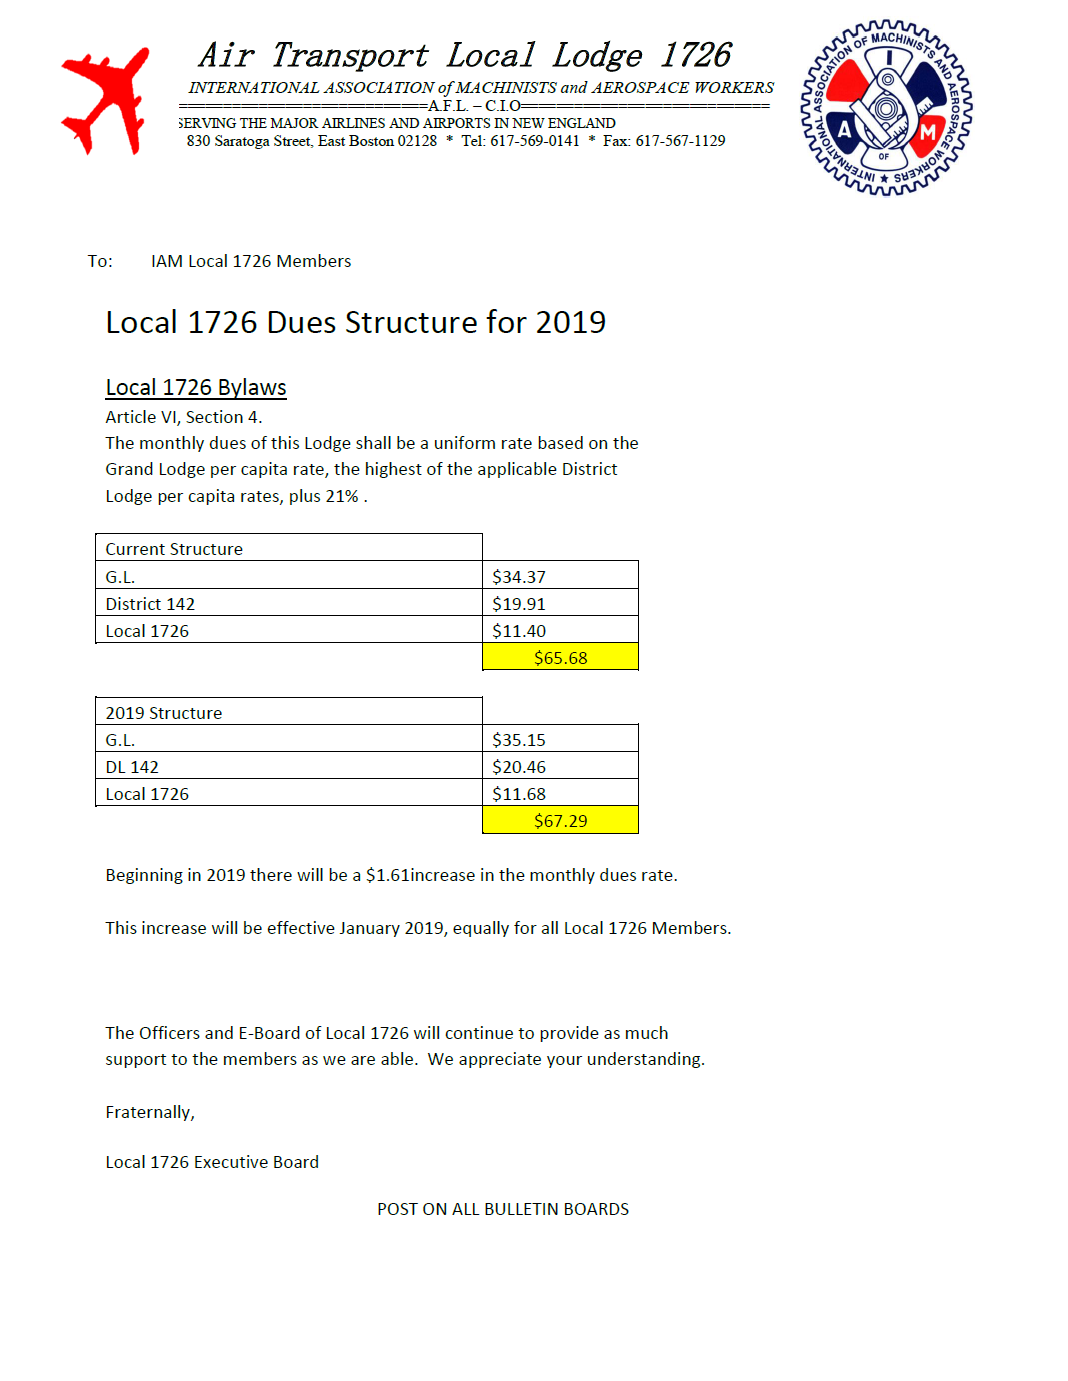 2019 dues structure